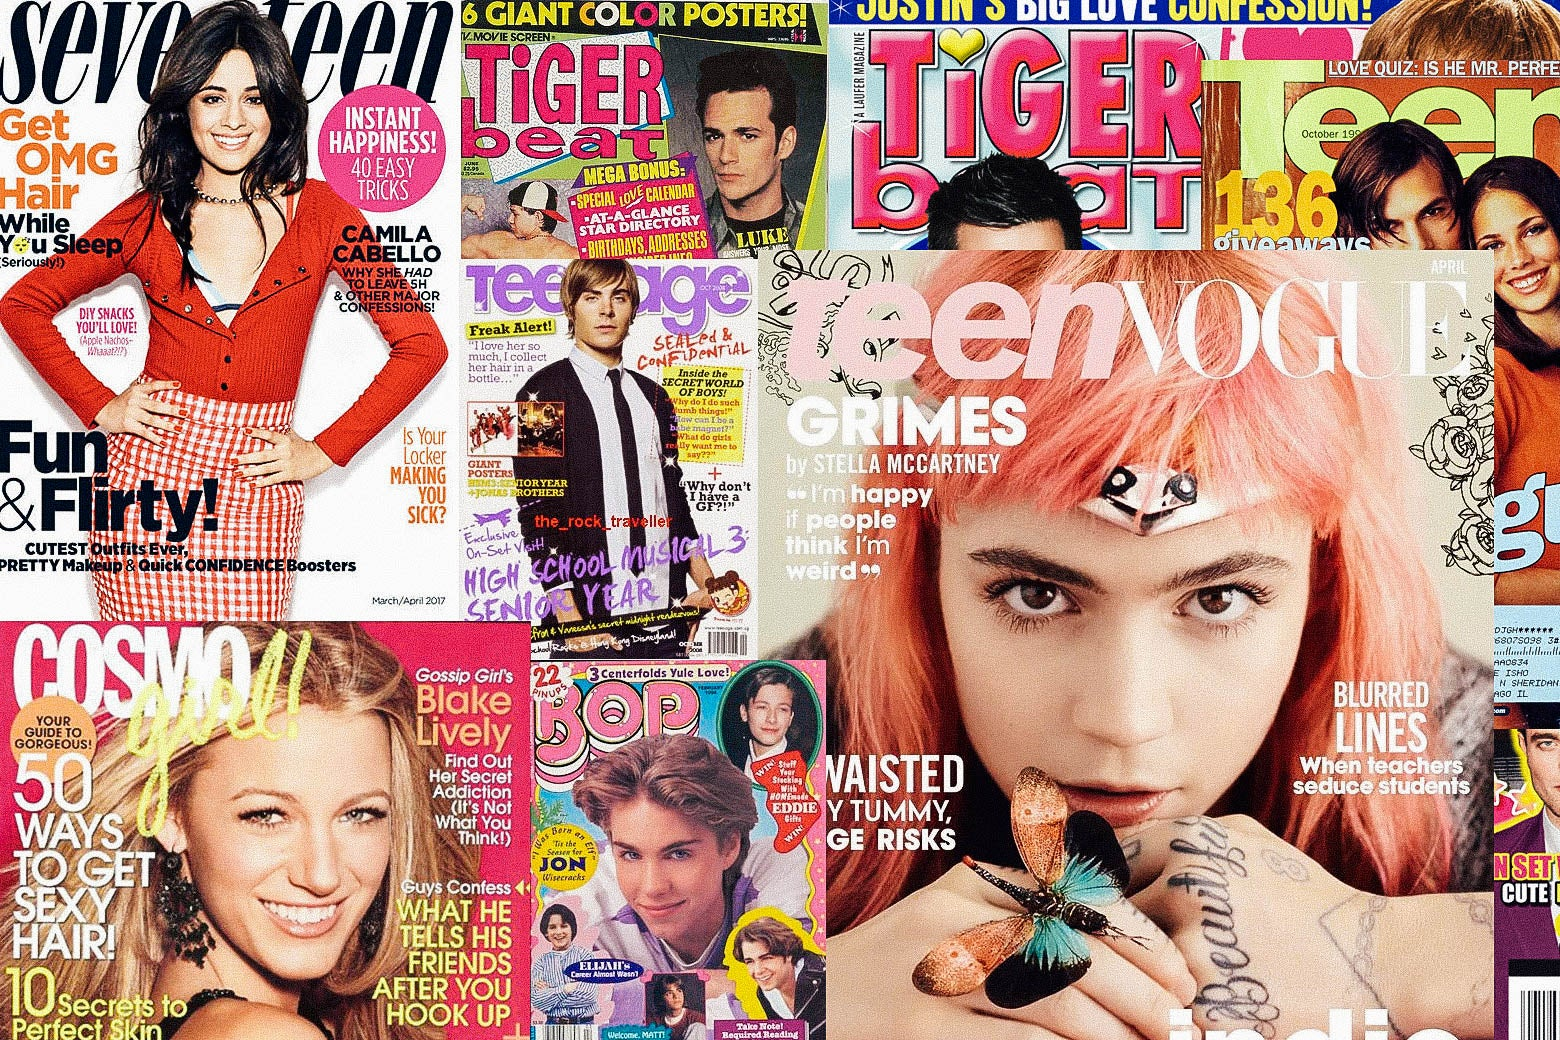 Cover image collage of Seventeen, CosmoGirl, Tiger Beat, Teen Vogue, Teen and Bop Magazines.